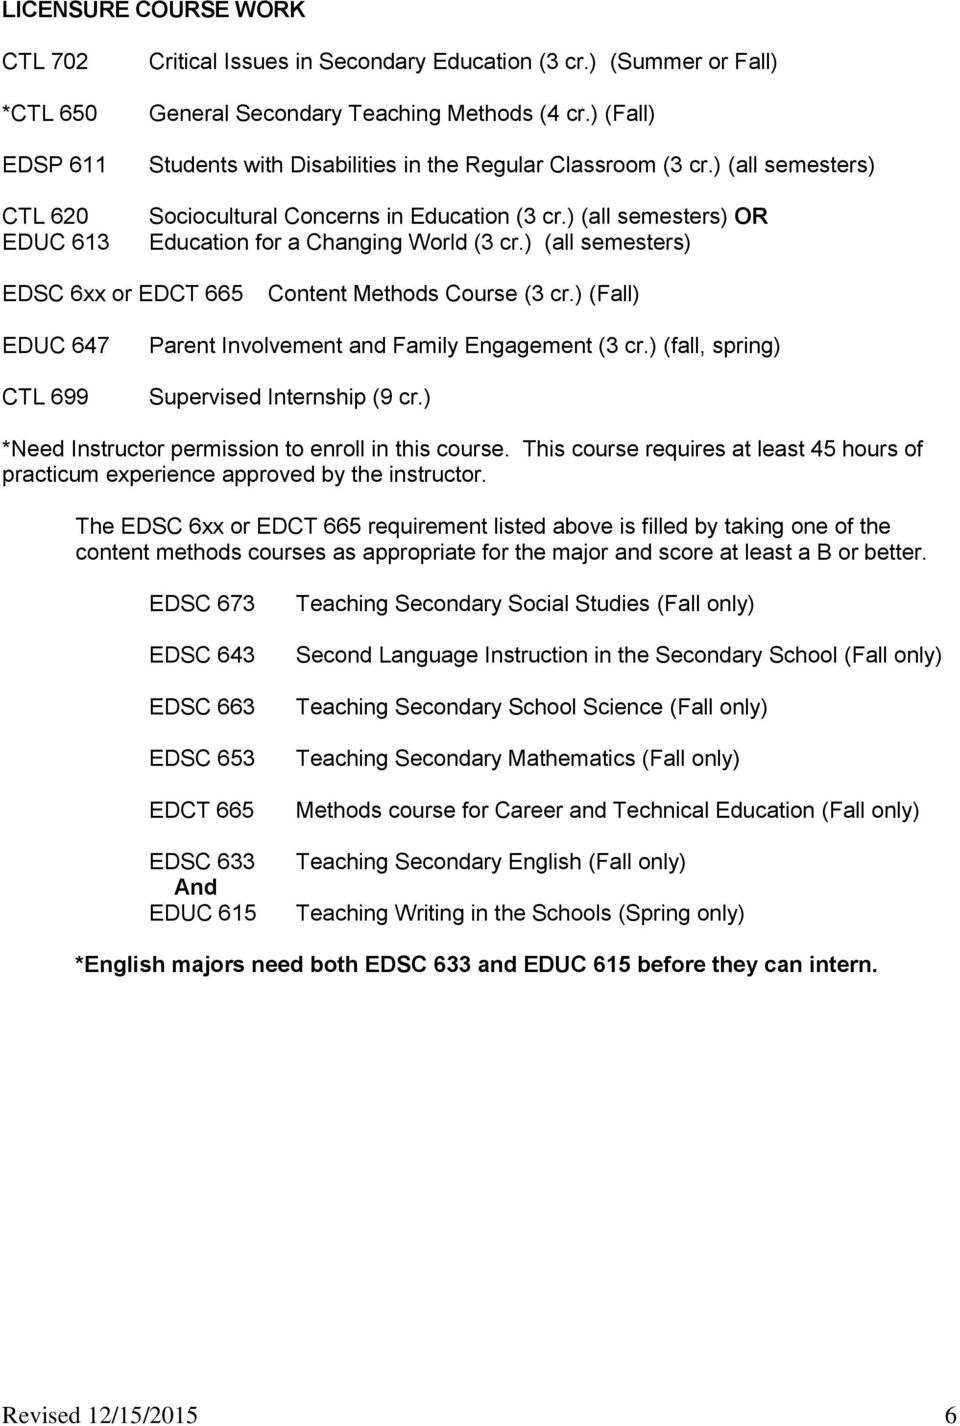 ) (all semesters) EDSC 6xx or EDCT 665 Content Methods Course (3 cr.) (Fall) EDUC 647 CTL 699 Parent Involvement and Family Engagement (3 cr.) (fall, spring) Supervised Internship (9 cr.